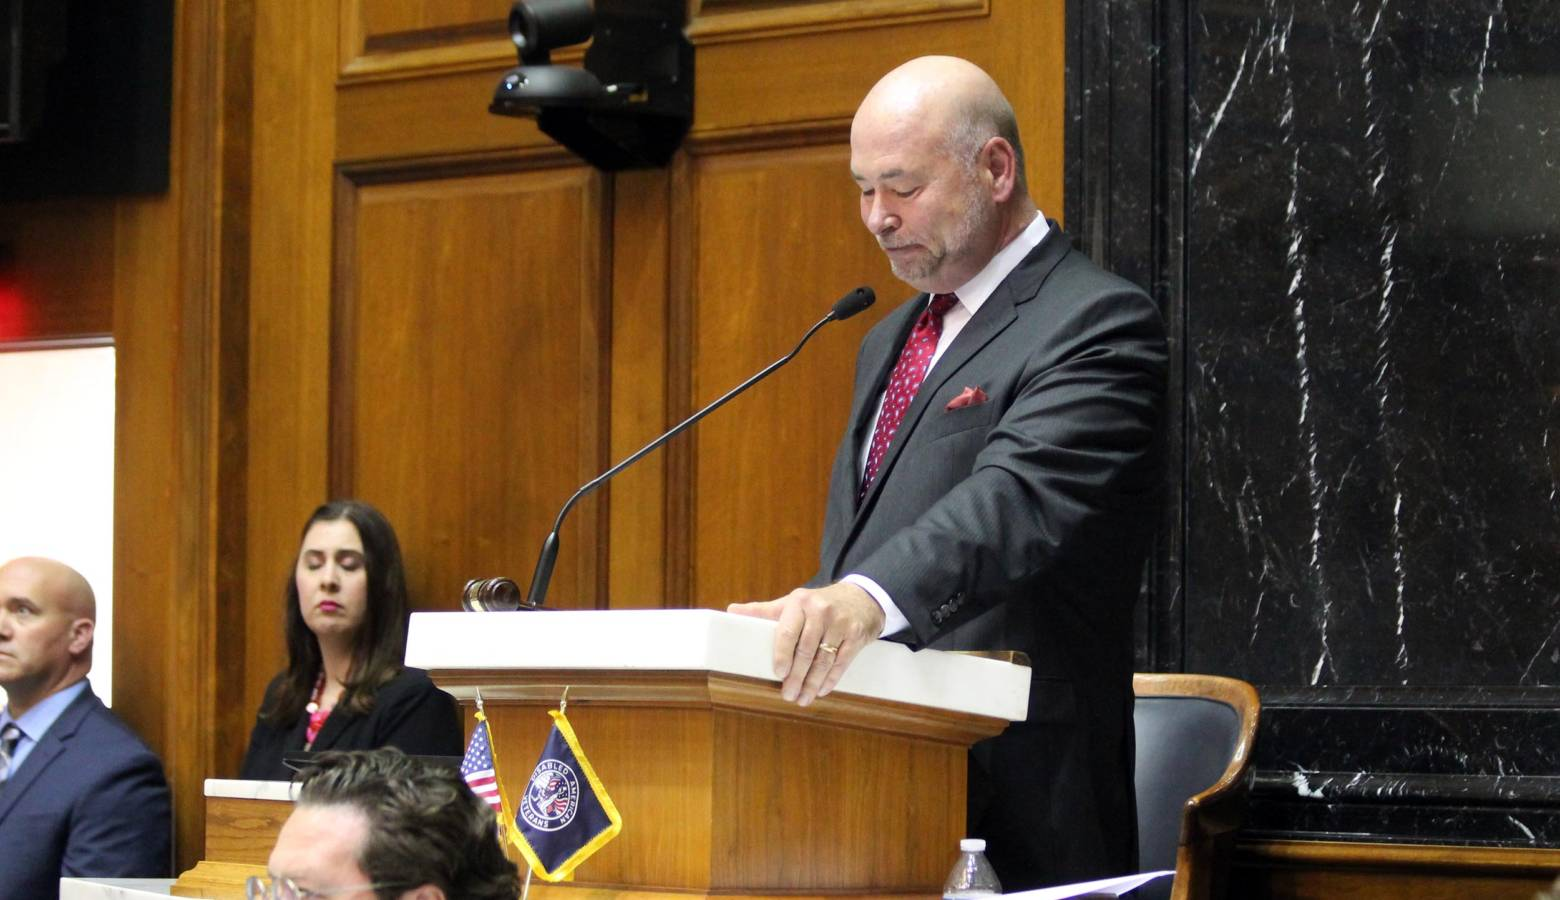 House Speaker Brian Bosma announces the 2020 legislative session will be his last. (Lauren Chapman/IPB News)